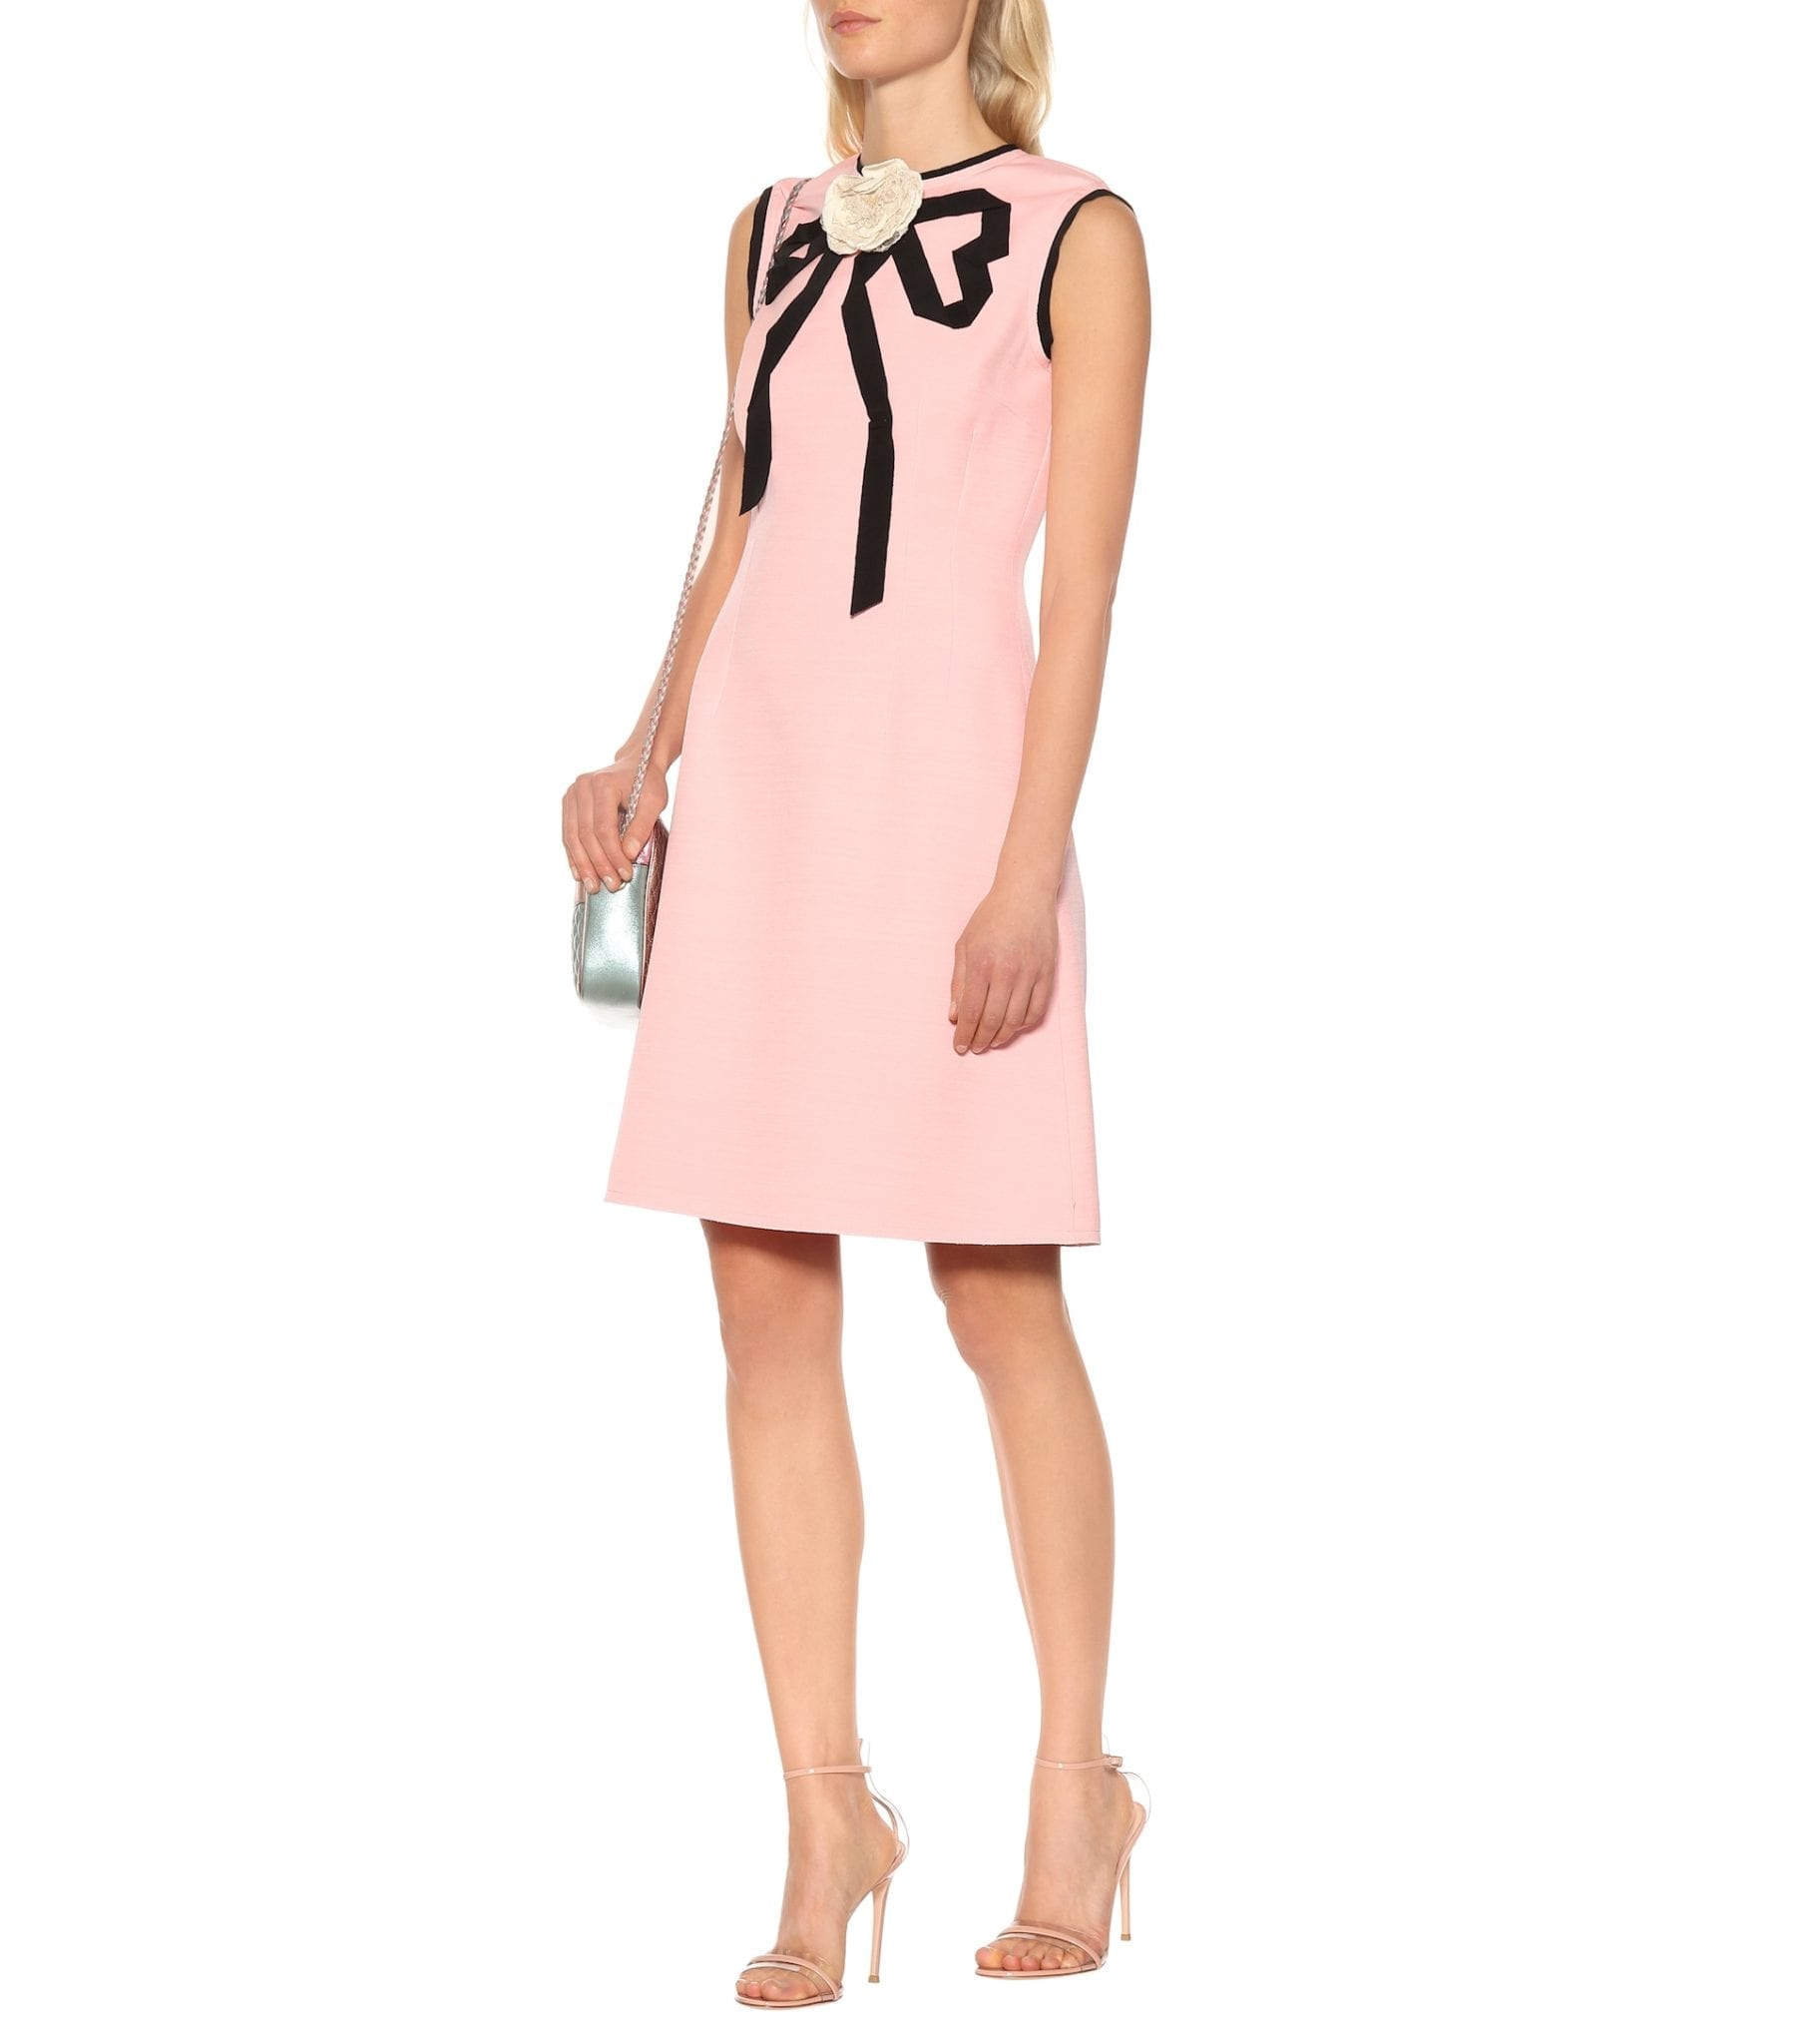 ee4695551 GUCCI Wool And Silk Crêpe Pink Dress - We Select Dresses